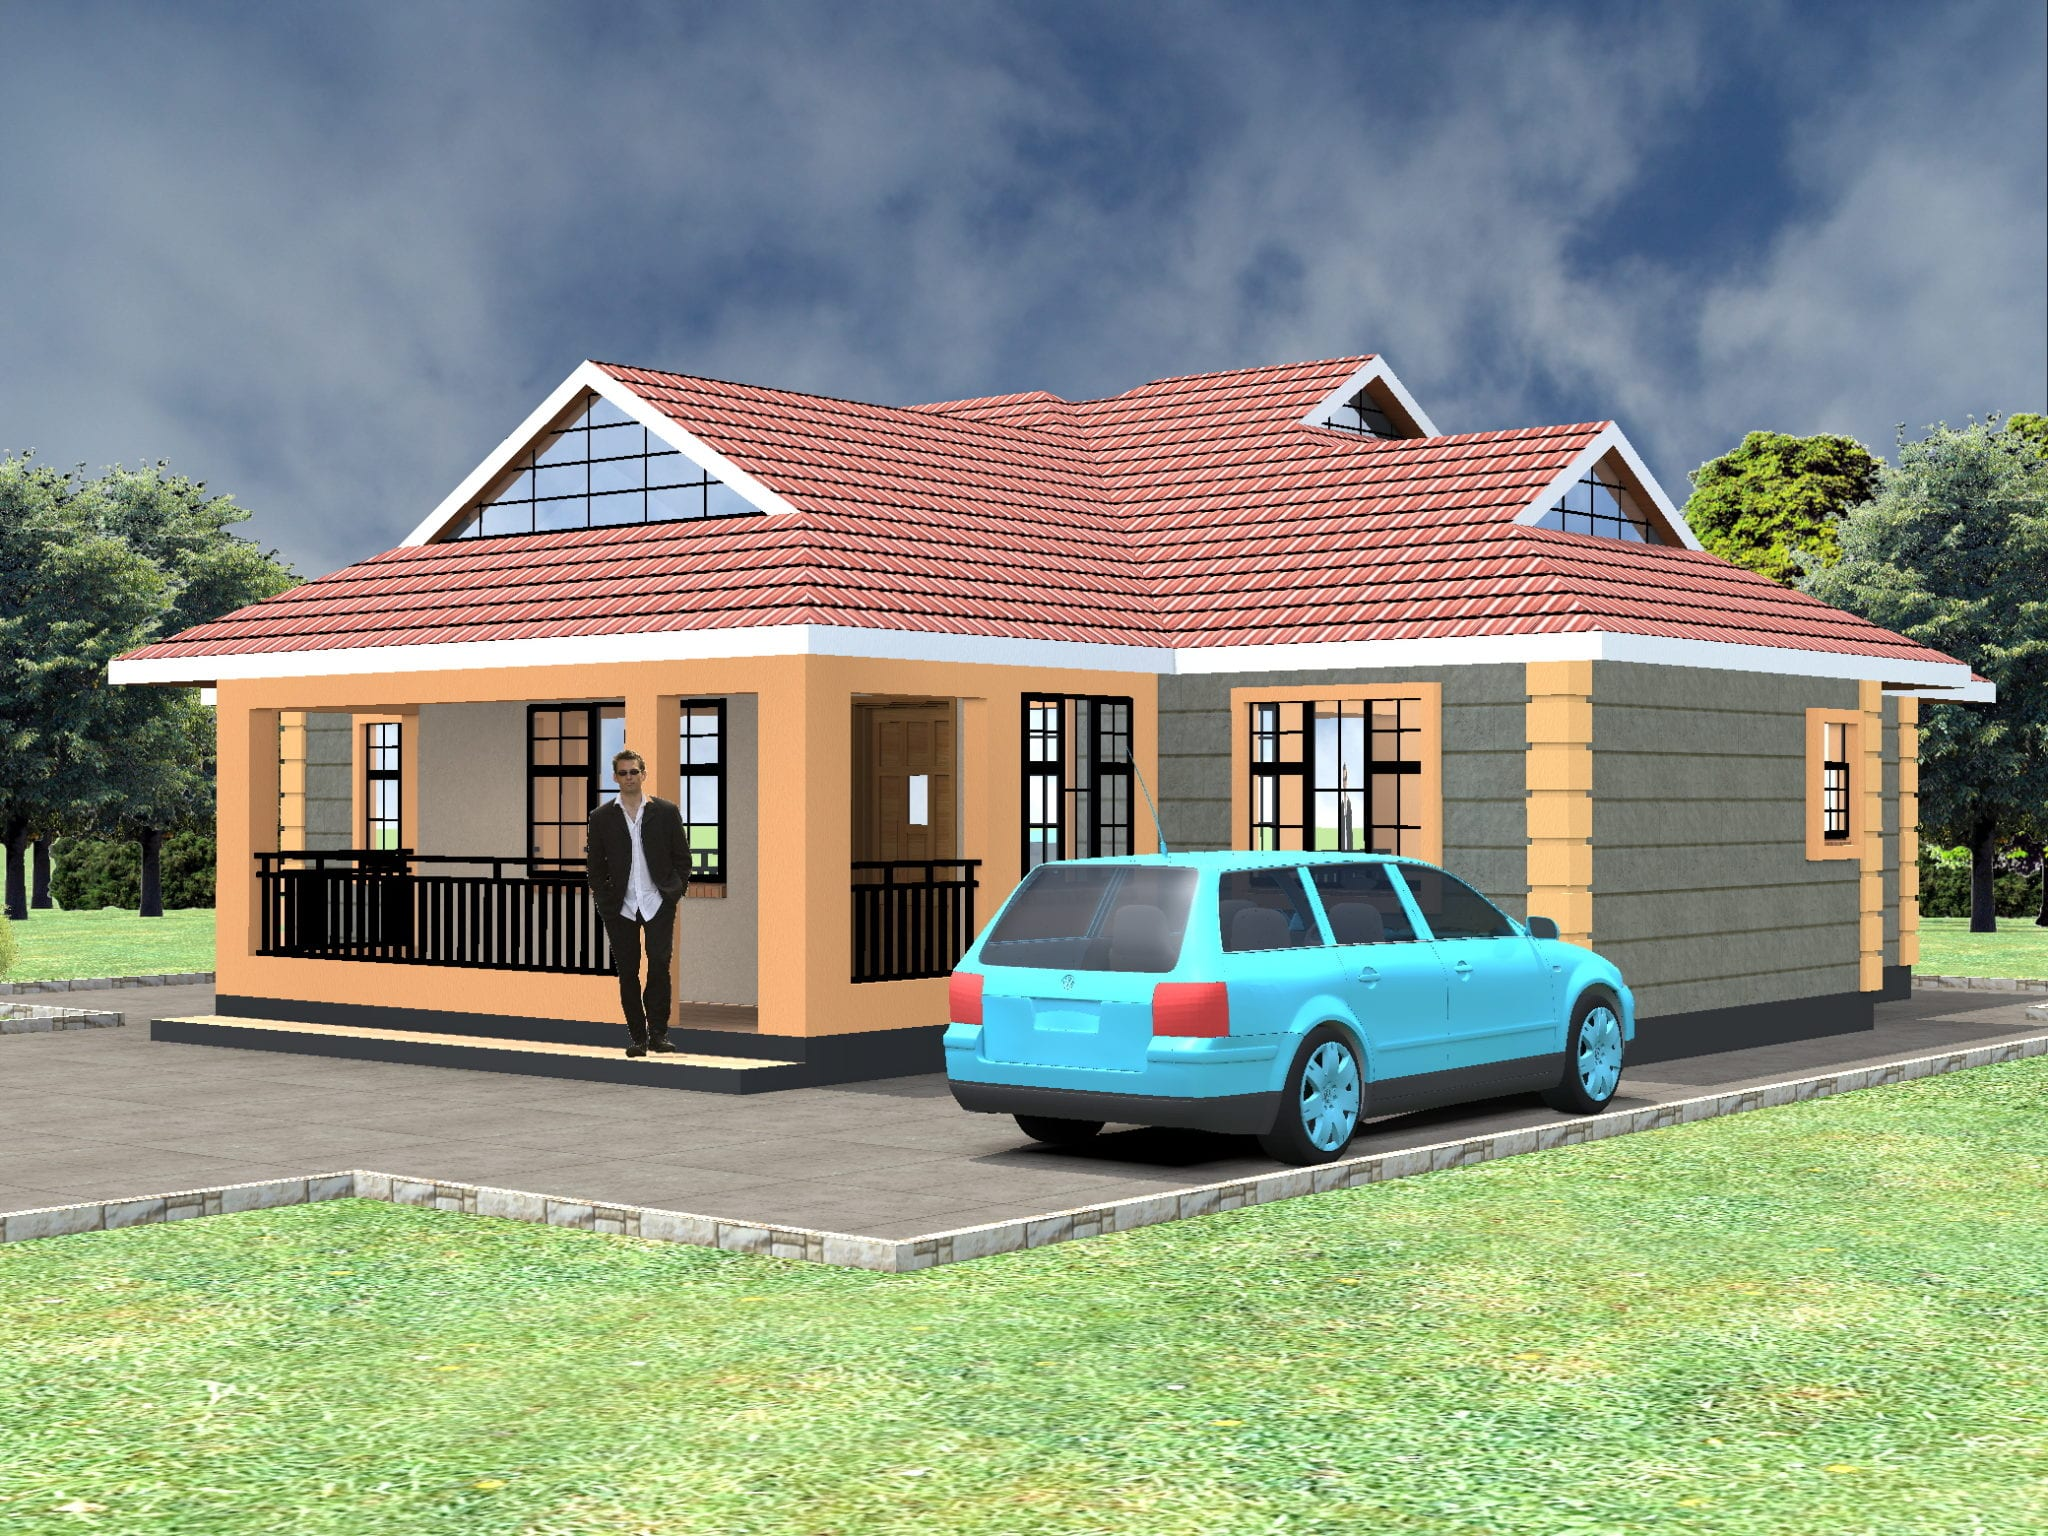 House Plans Without Garage: Simple 3 Bedroom House Plans Without Garage